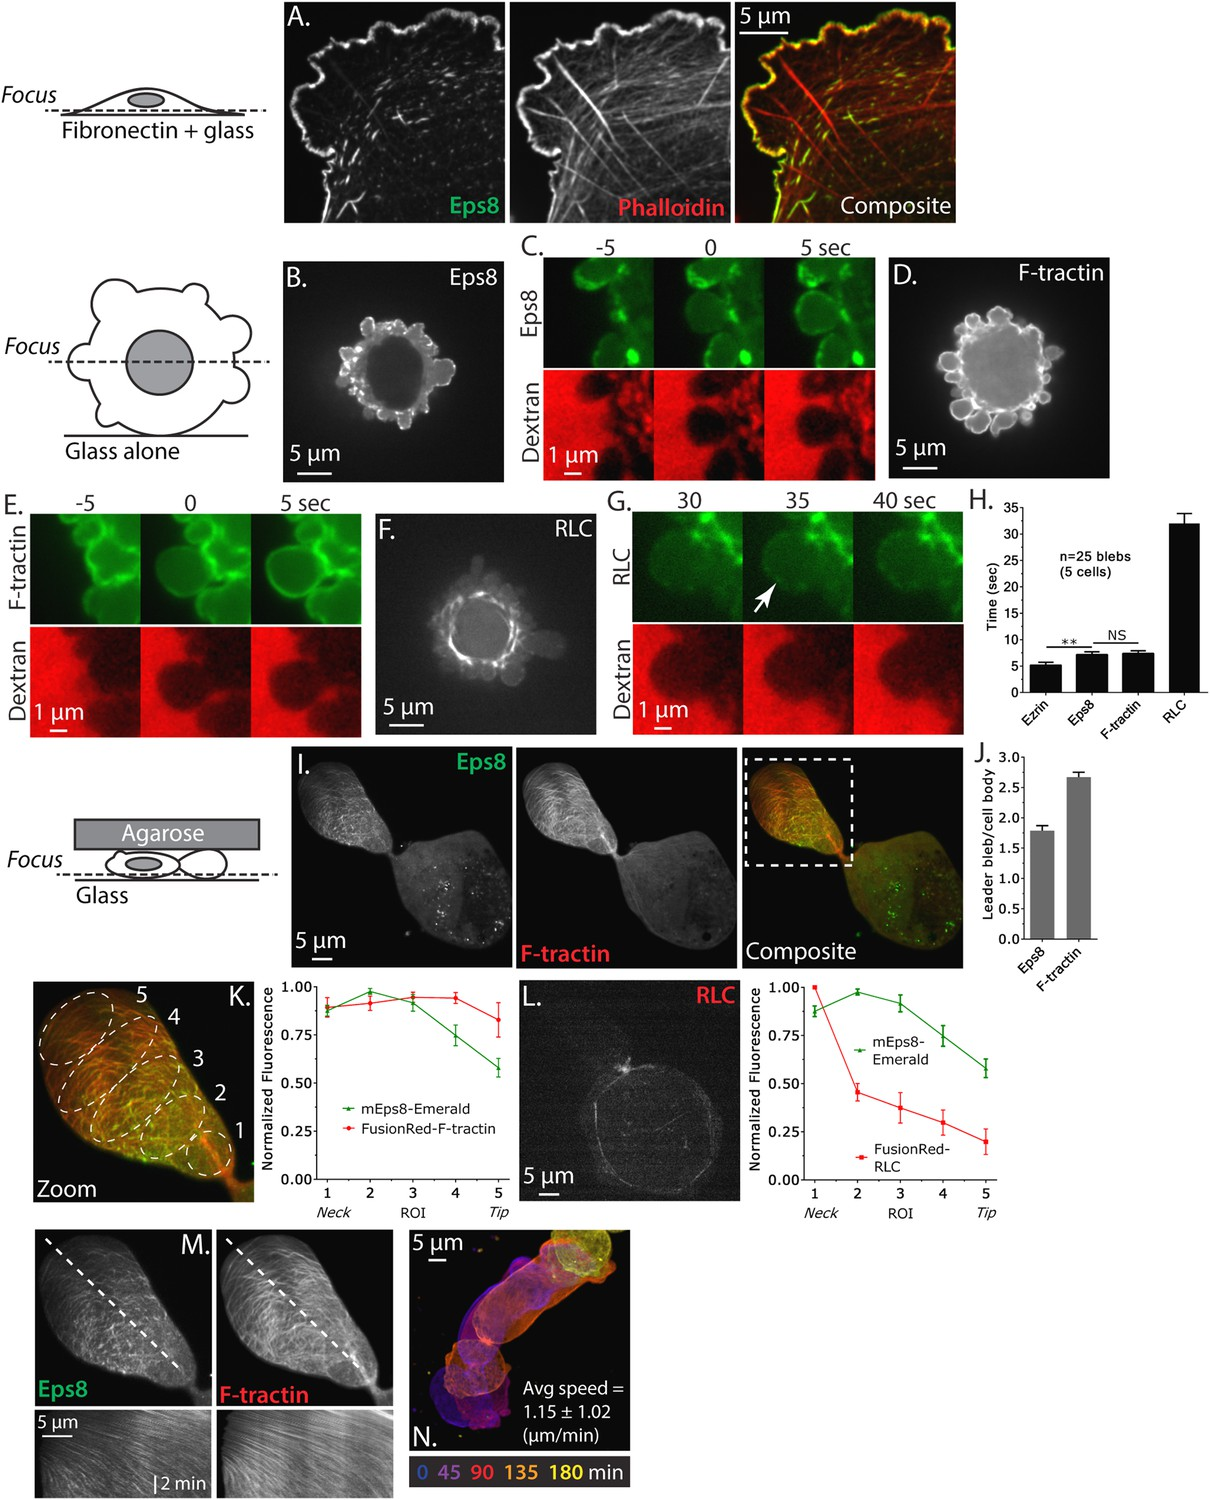 Erk regulation of actin capping and bundling by Eps8